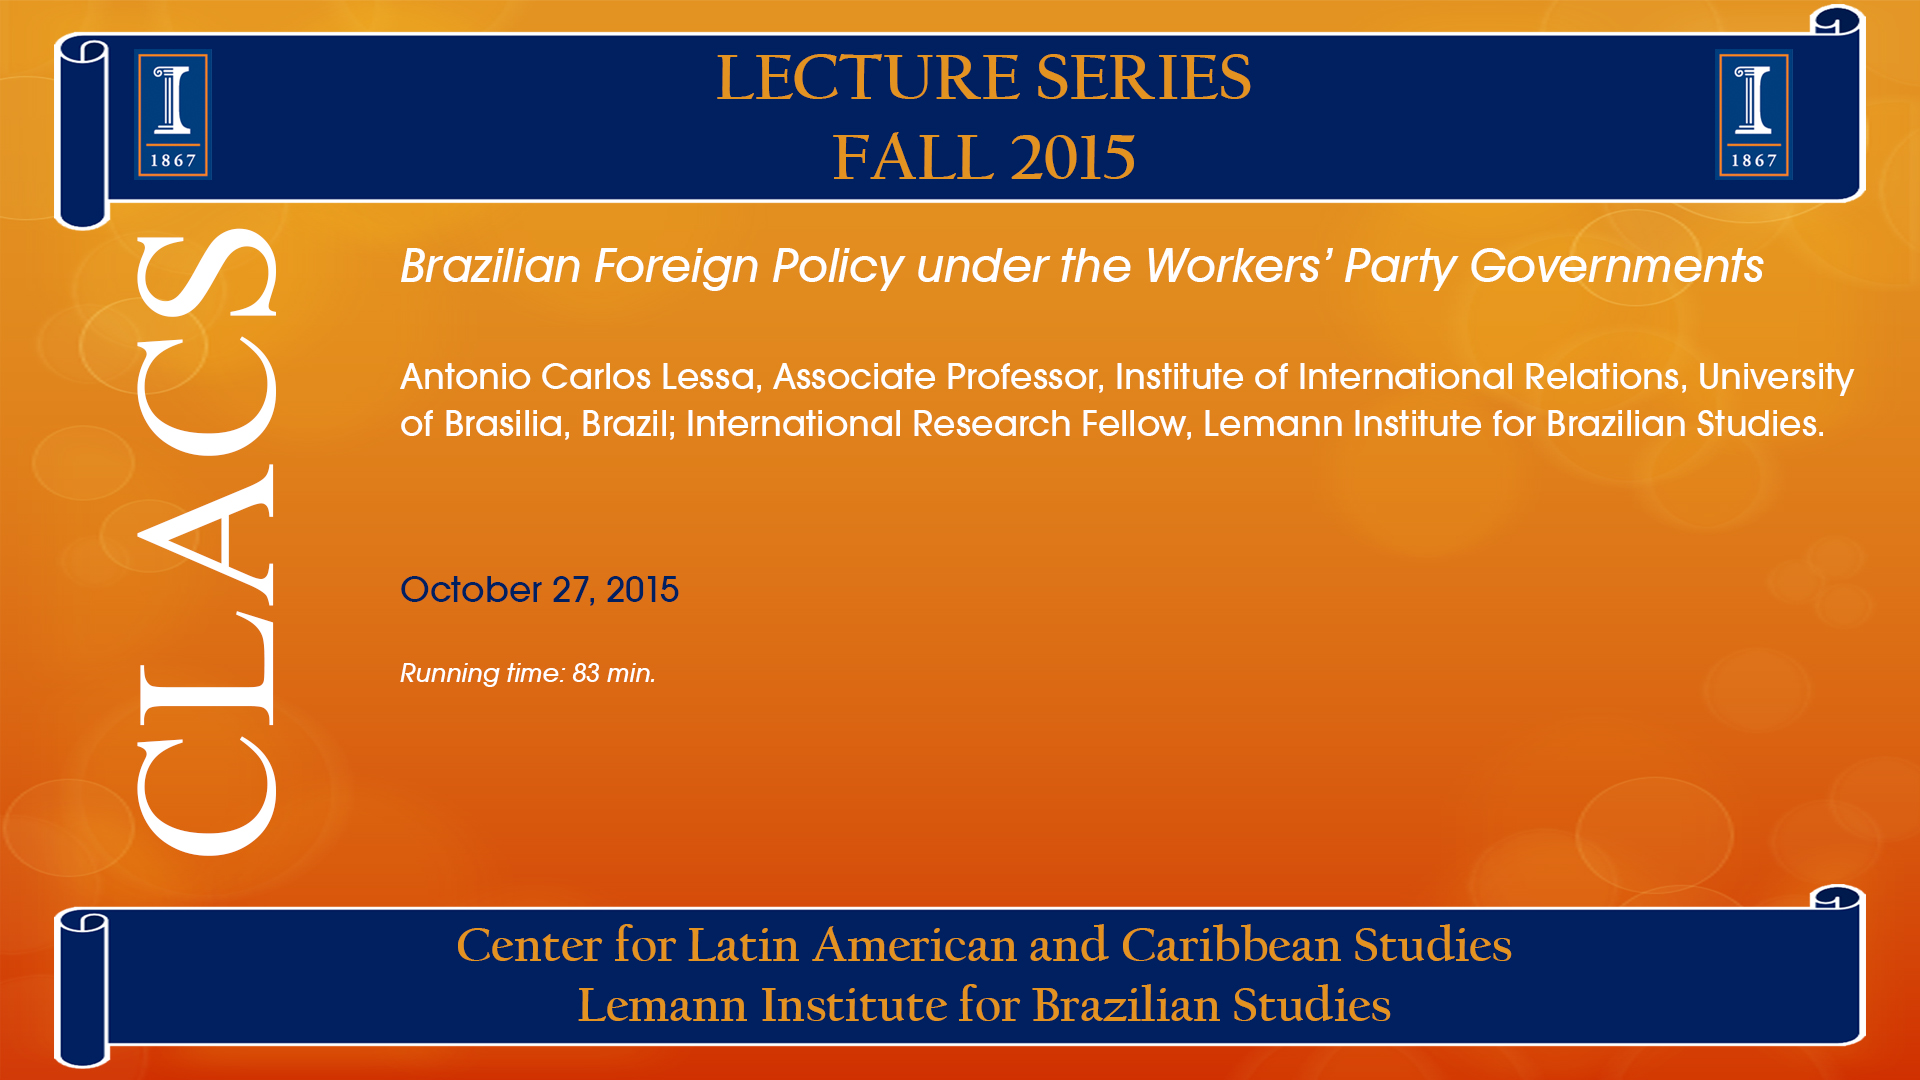 Brazilian Foreign Policy under the Workers' Party Governments